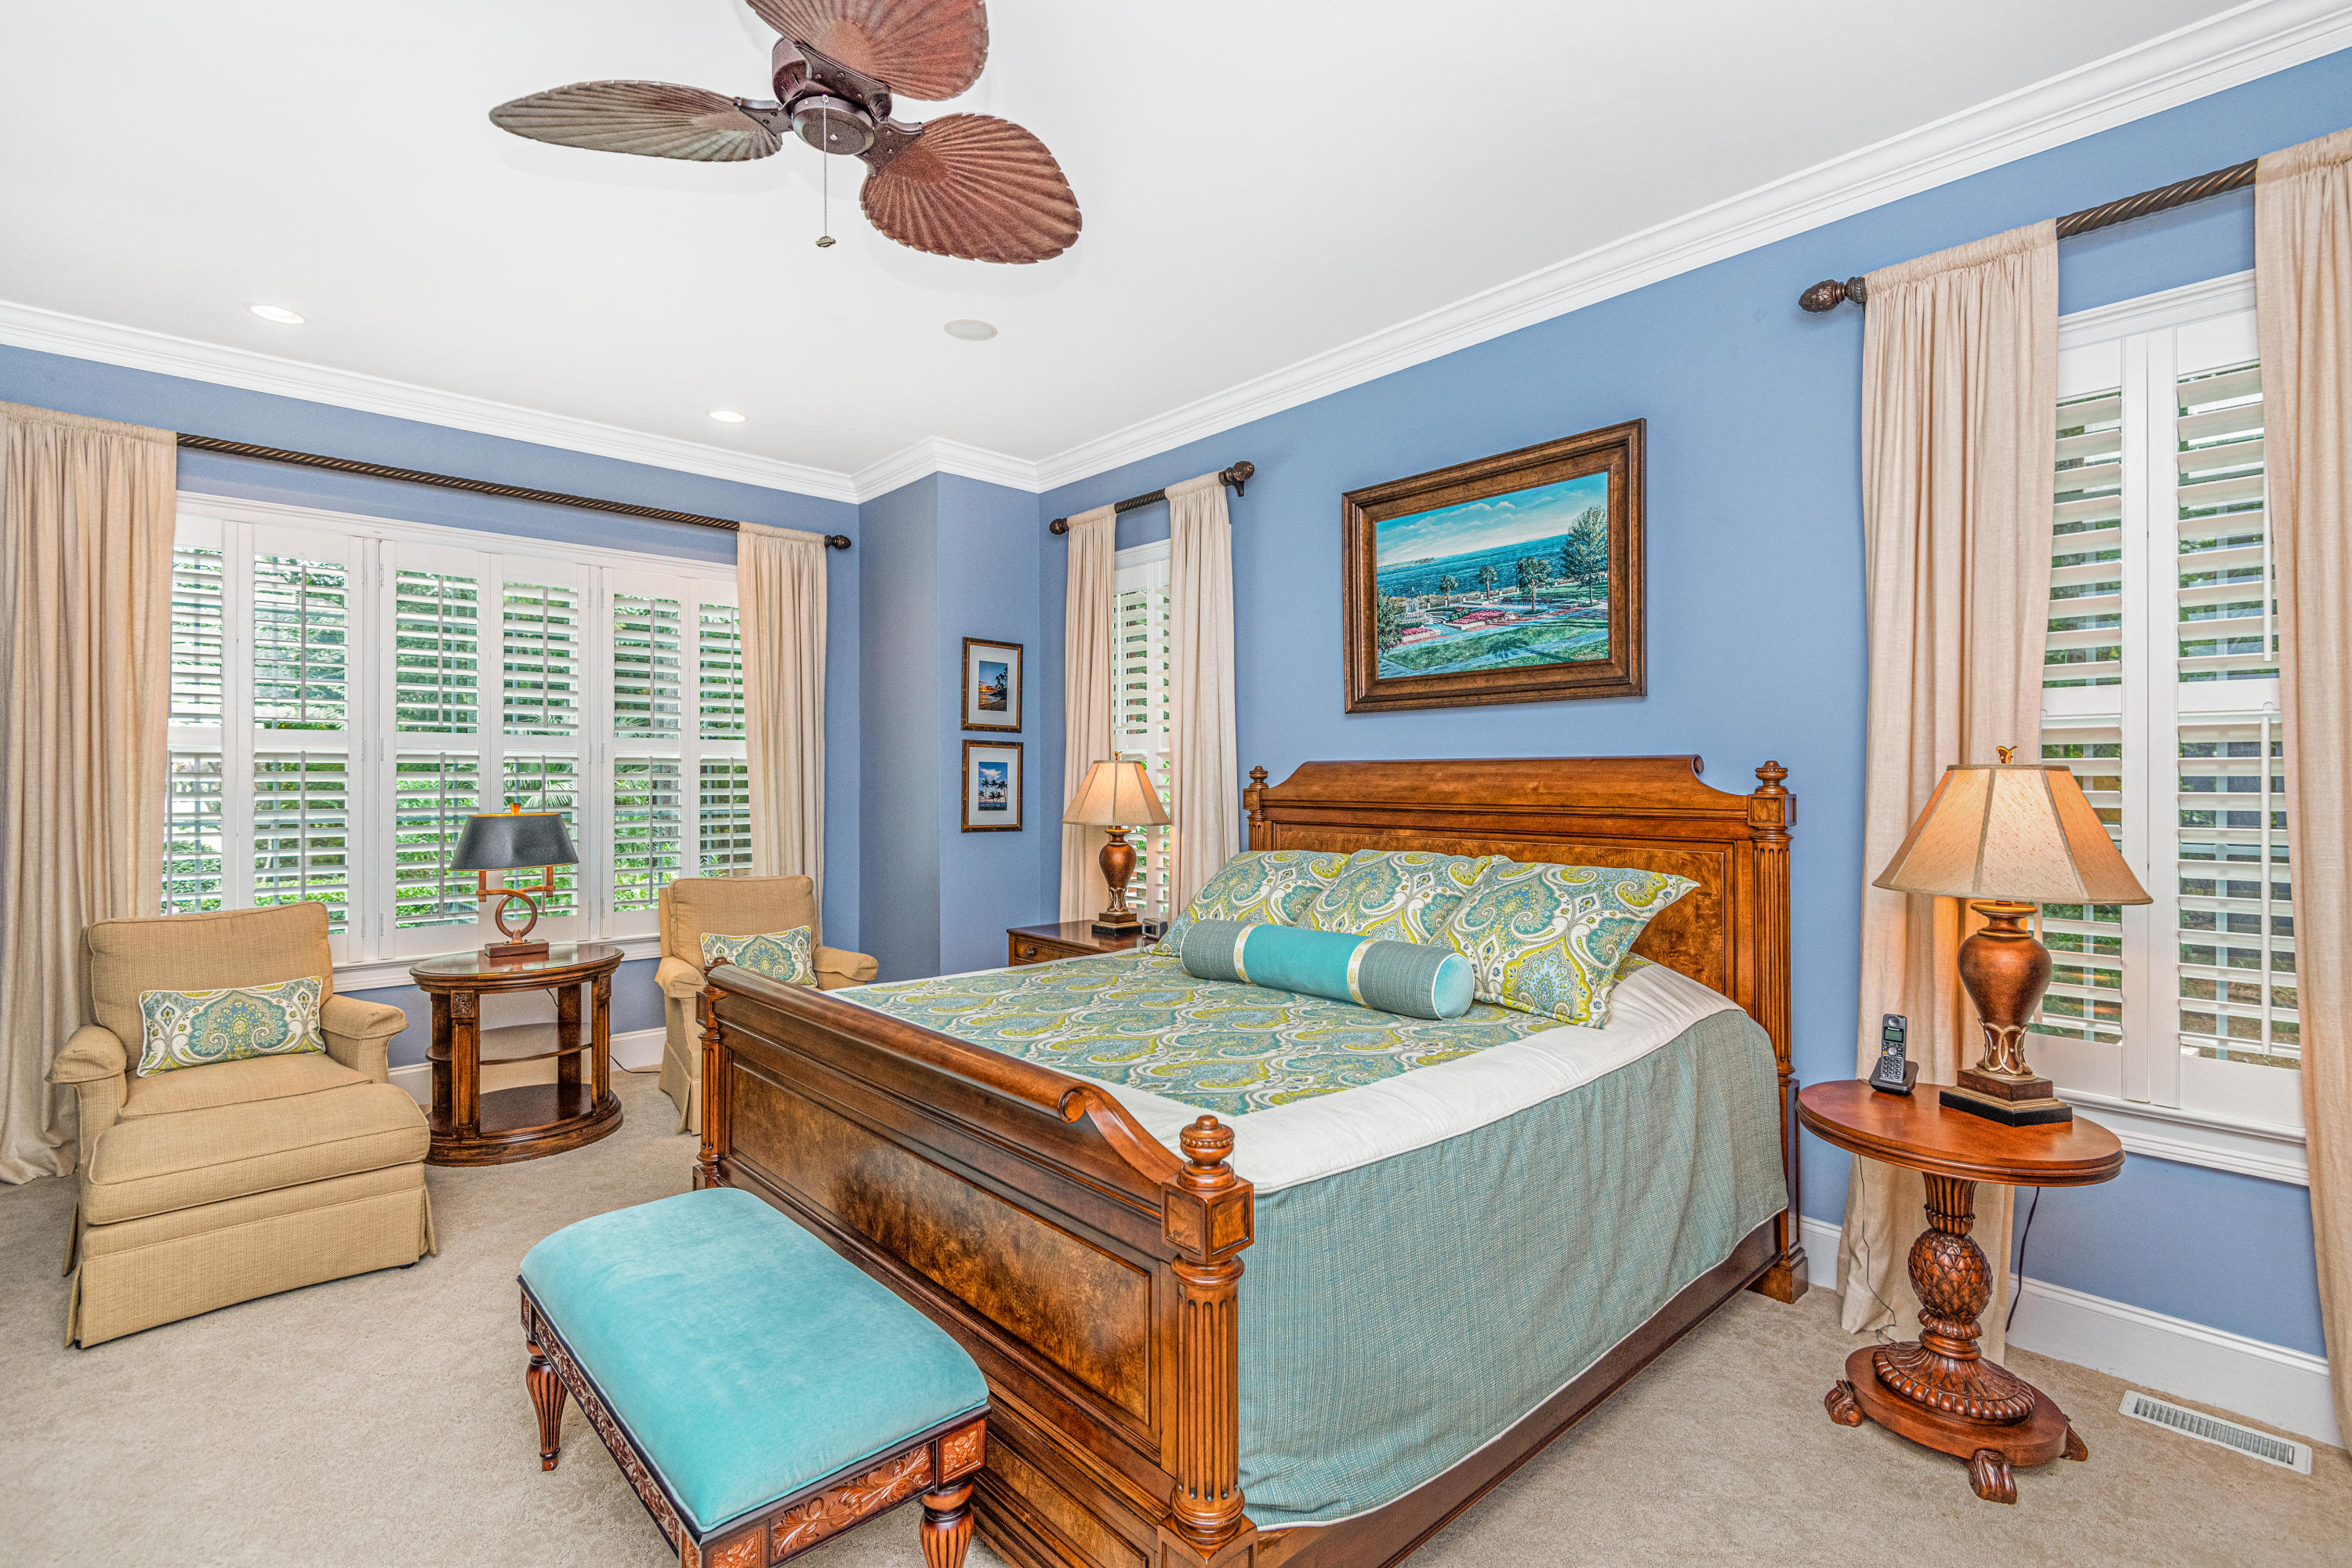 Dunes West Homes For Sale - 1837 Shell Ring, Mount Pleasant, SC - 12